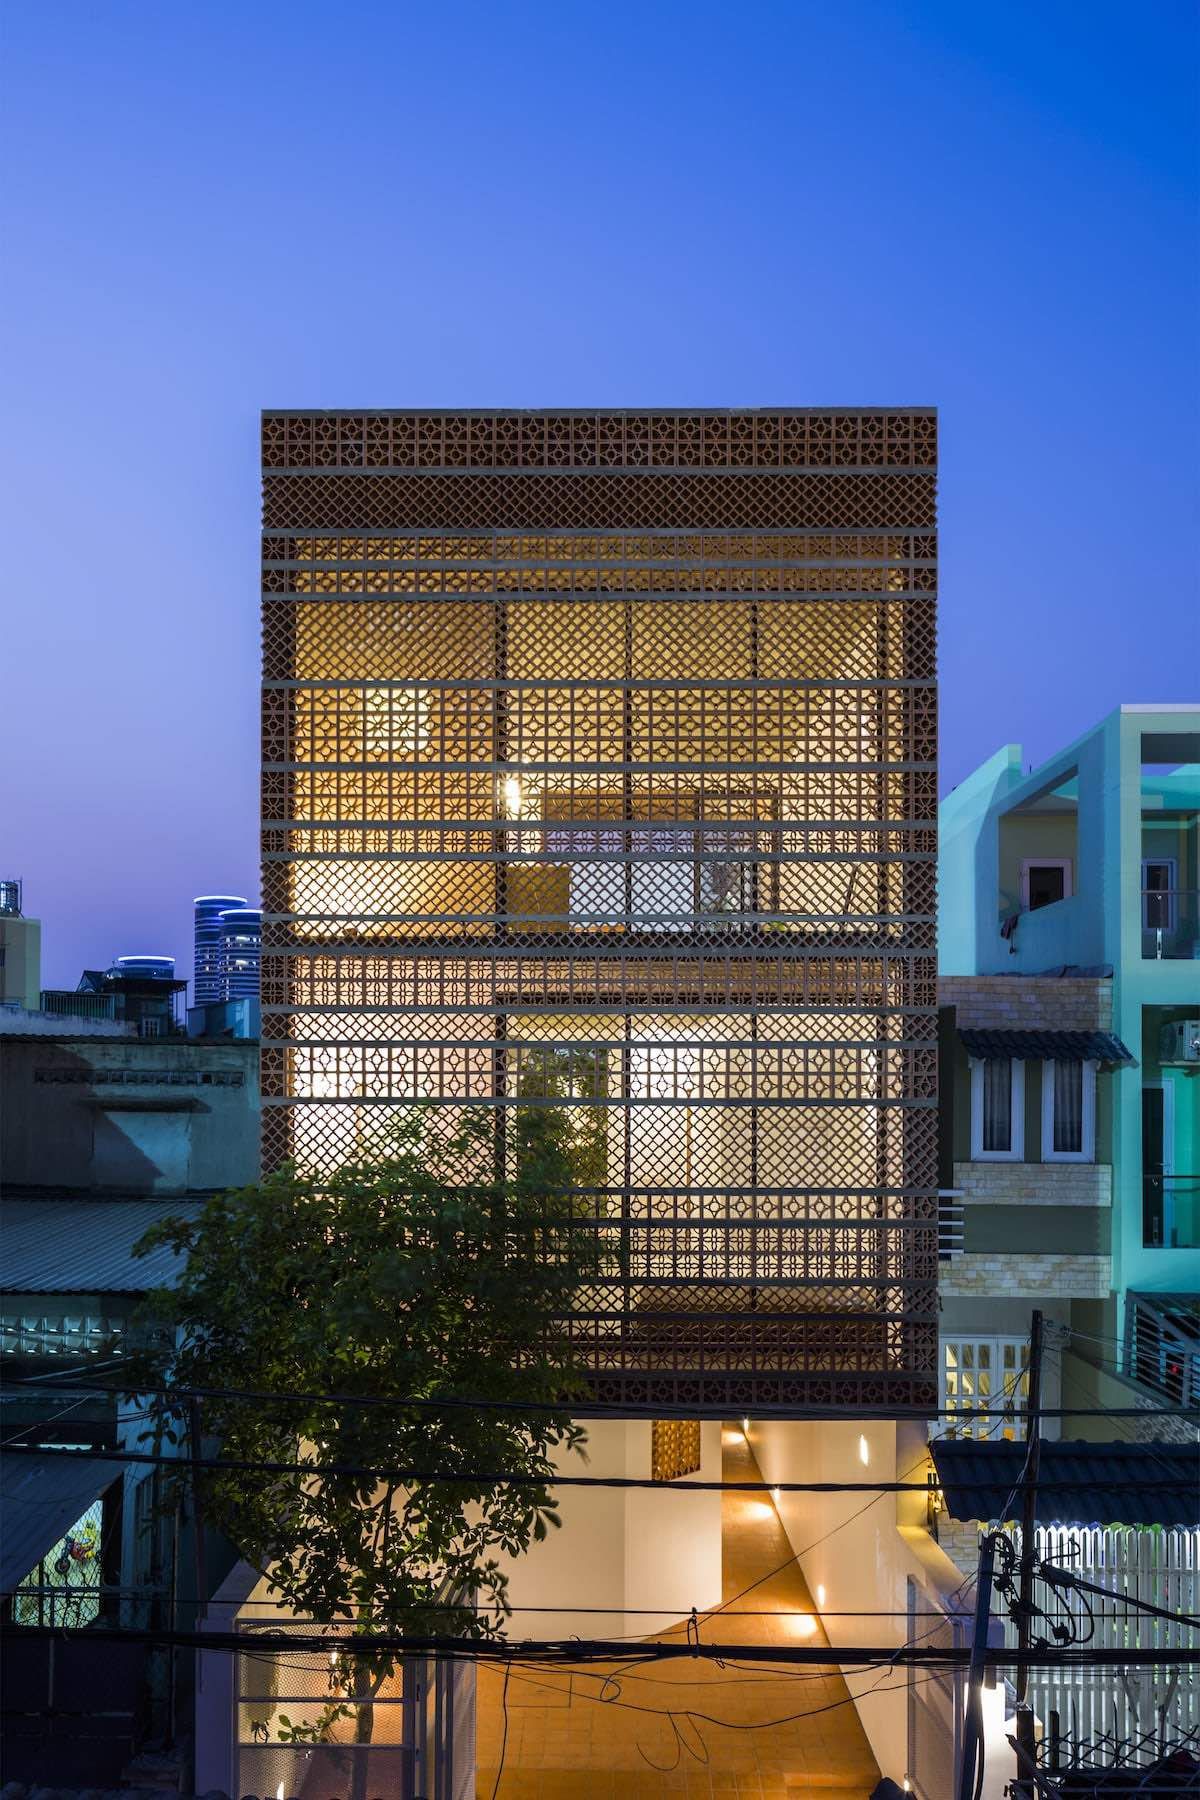 Exterior view of Binh Thanh Apartment at night // Design by SDA Architects // Image courtesy of Hiroyuki Oki